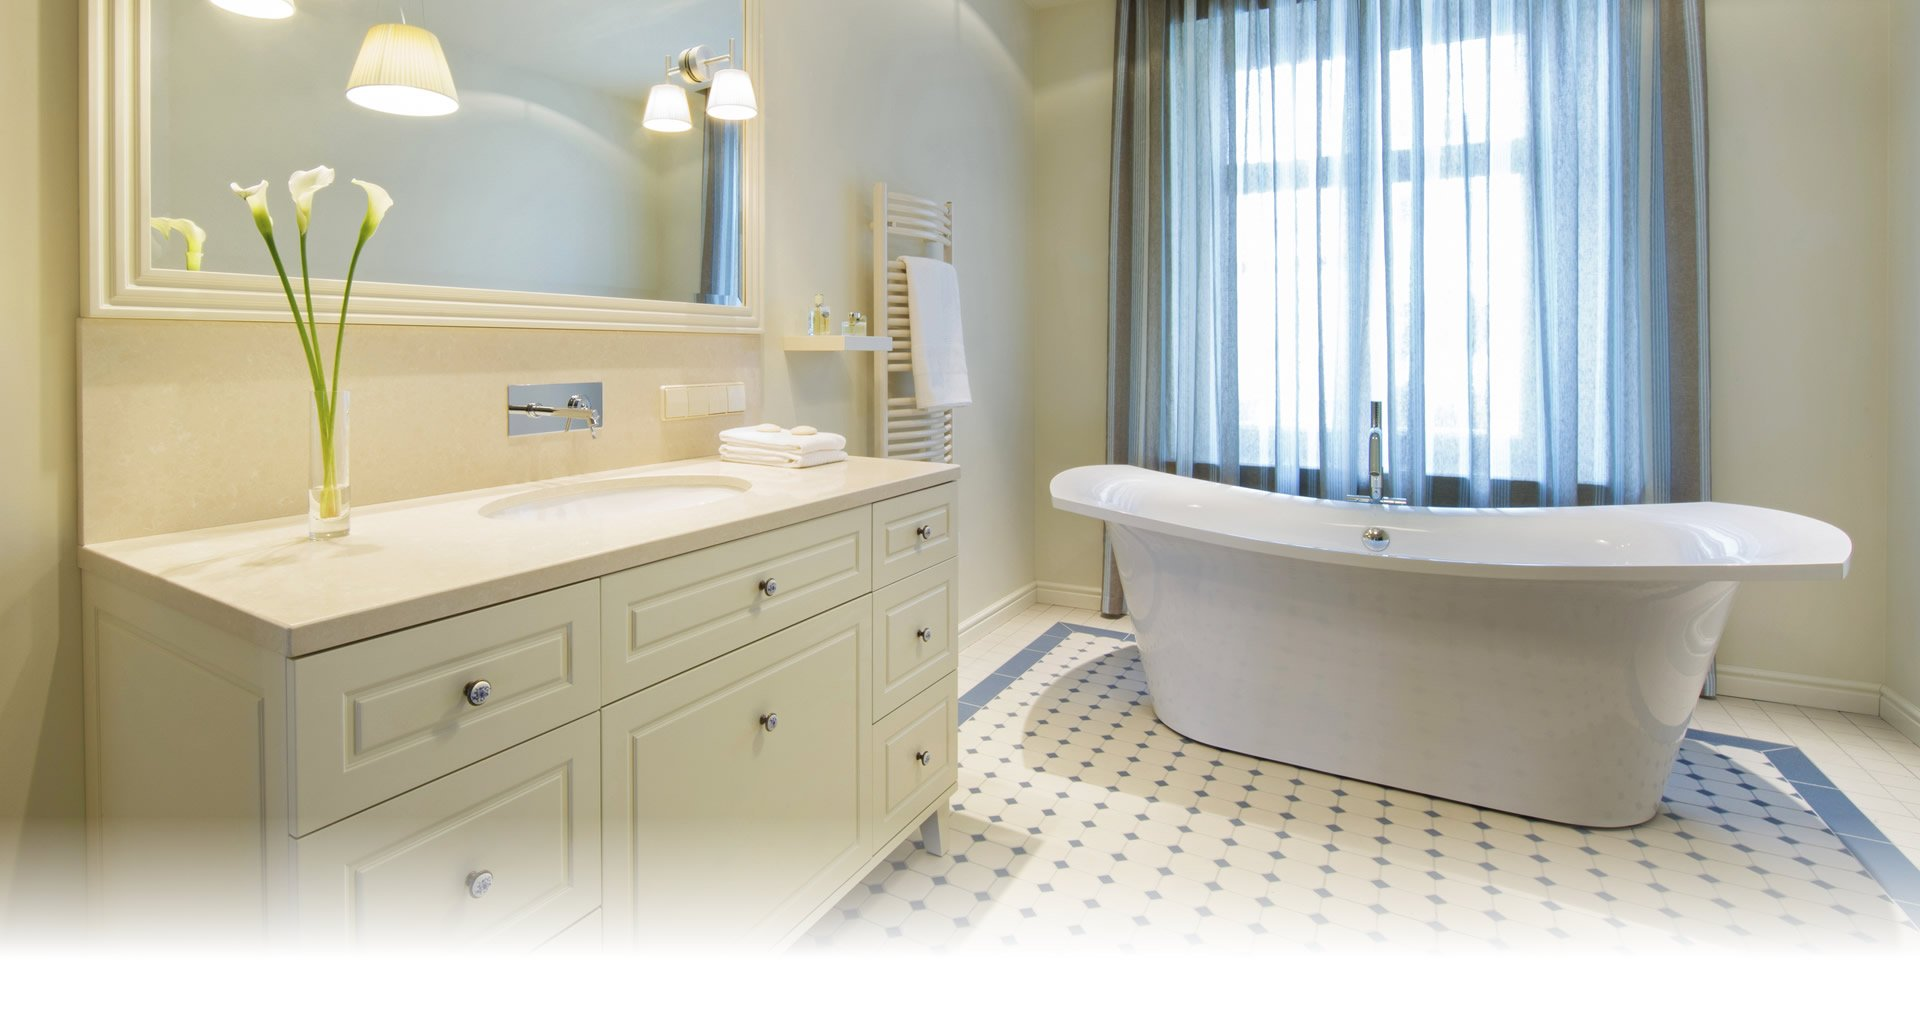 Remodeling contractor vancouver wa scherer enterprises for Bathroom remodel vancouver wa